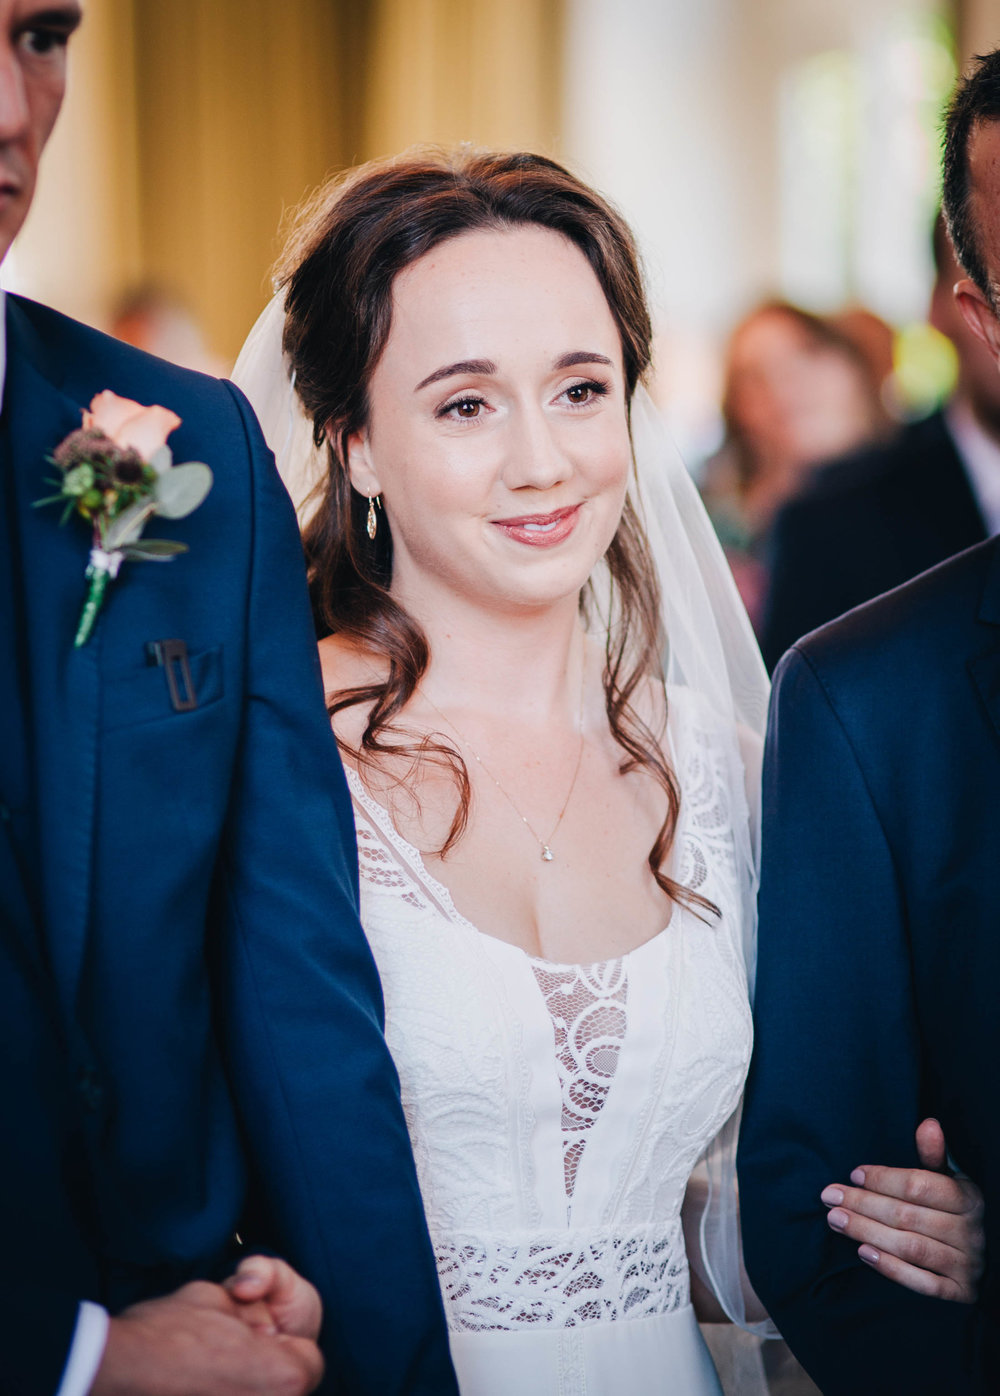 beautiful smiling bride - natural wedding photographer north west